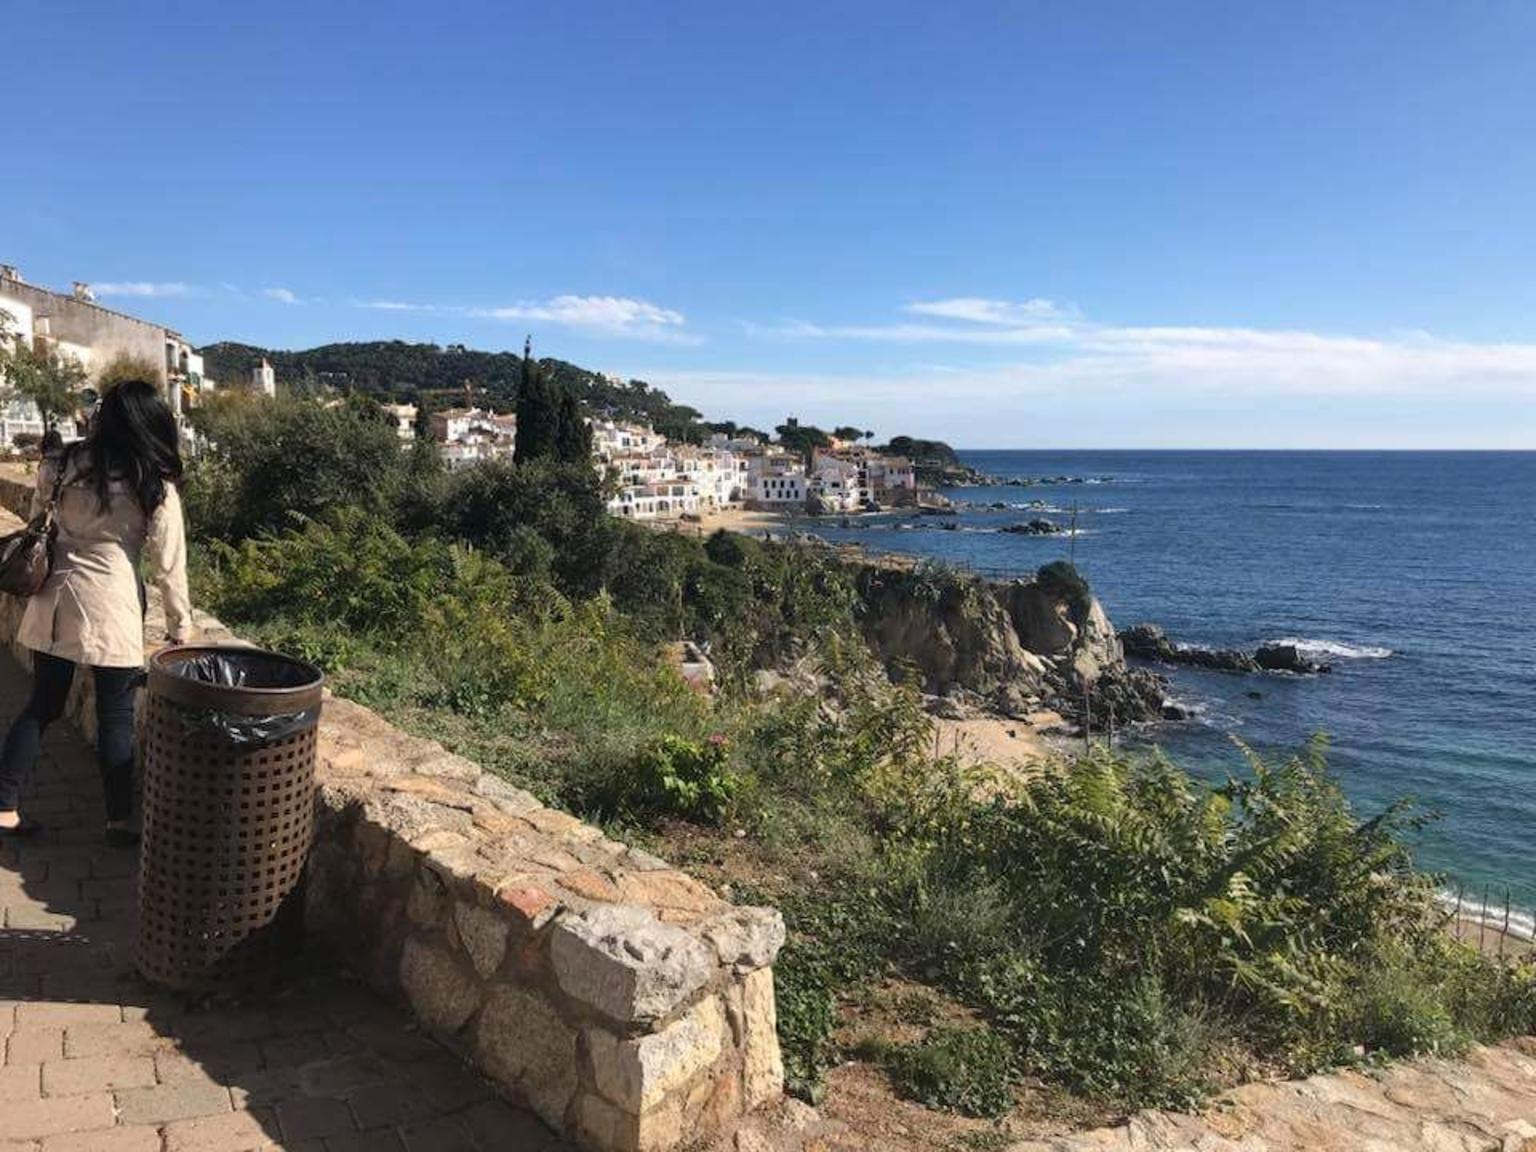 MORE PHOTOS, Girona and Costa Brava Small-Group Tour with Hotel pickup from Barcelona